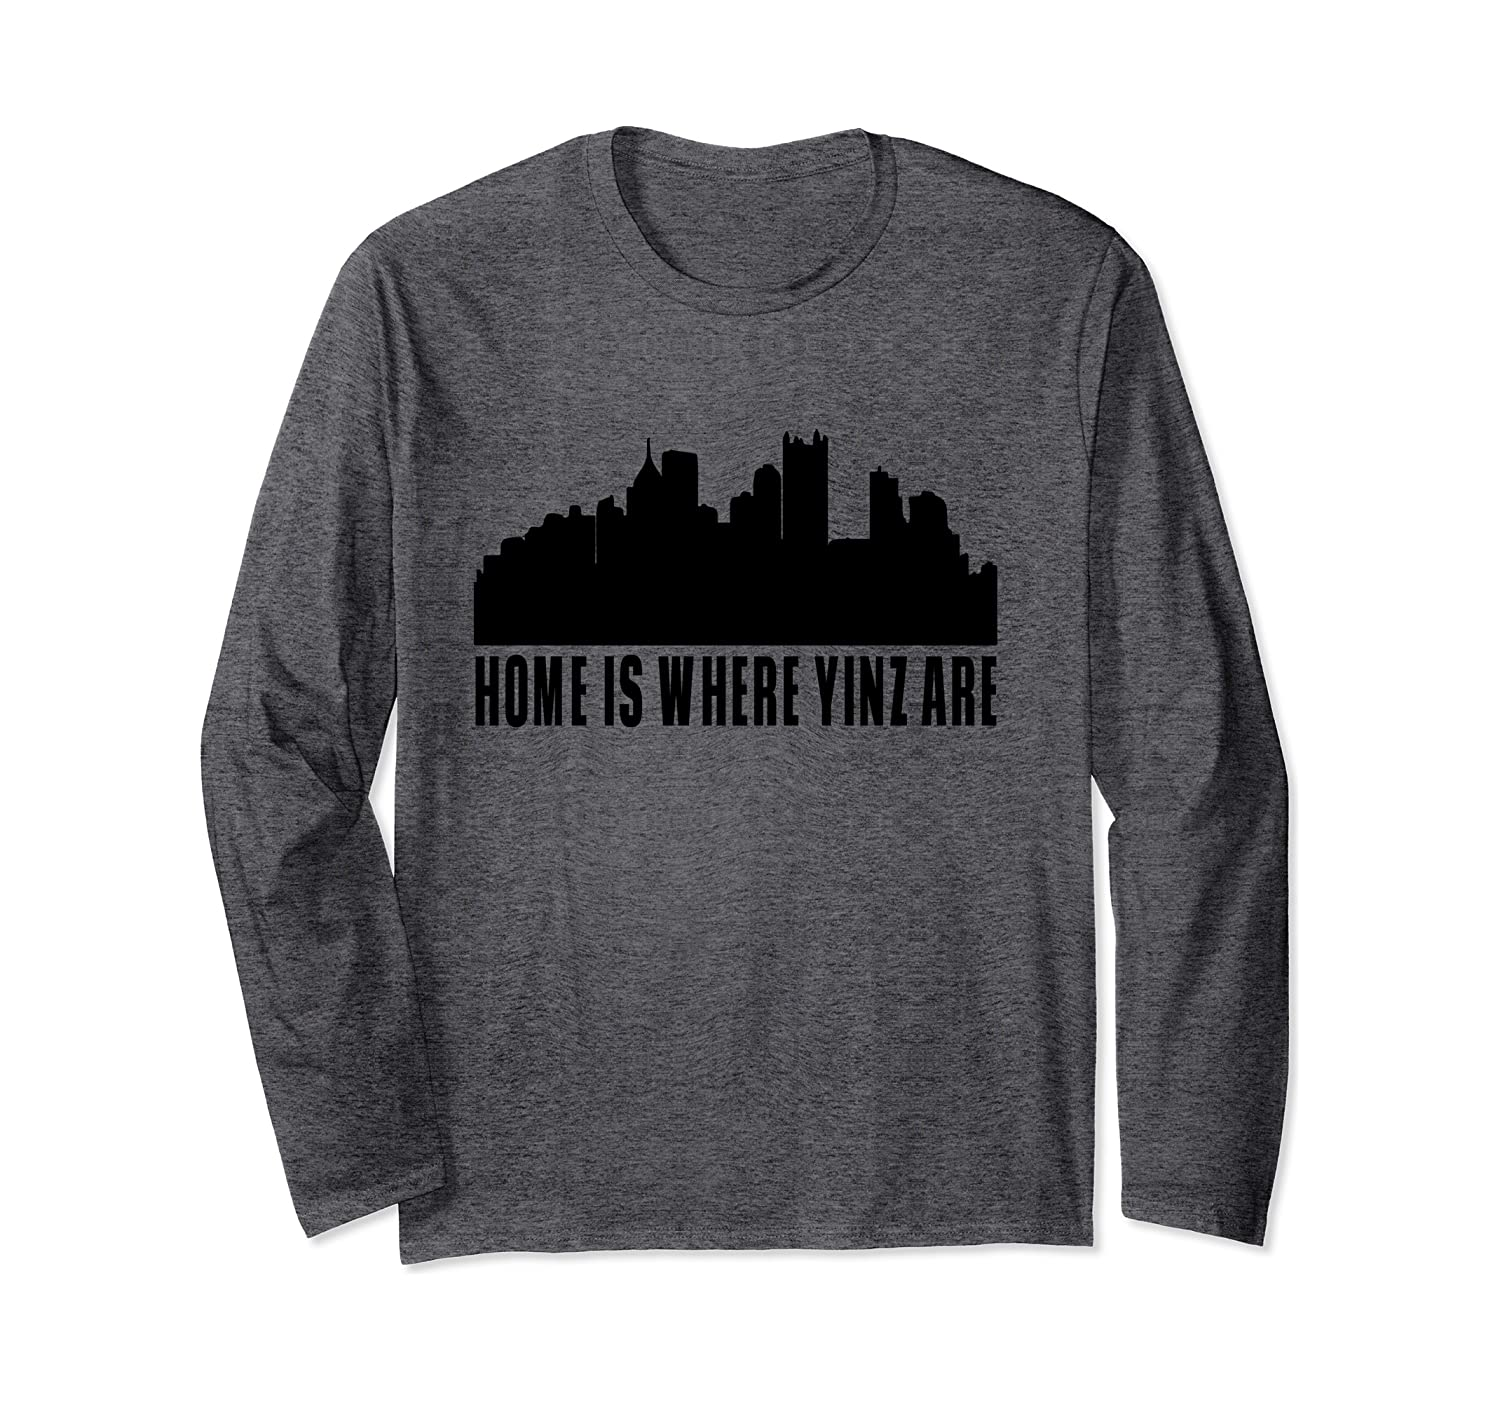 Pittsburgh Gifts - Home is where yinz are Long Sleeve T-Shirt